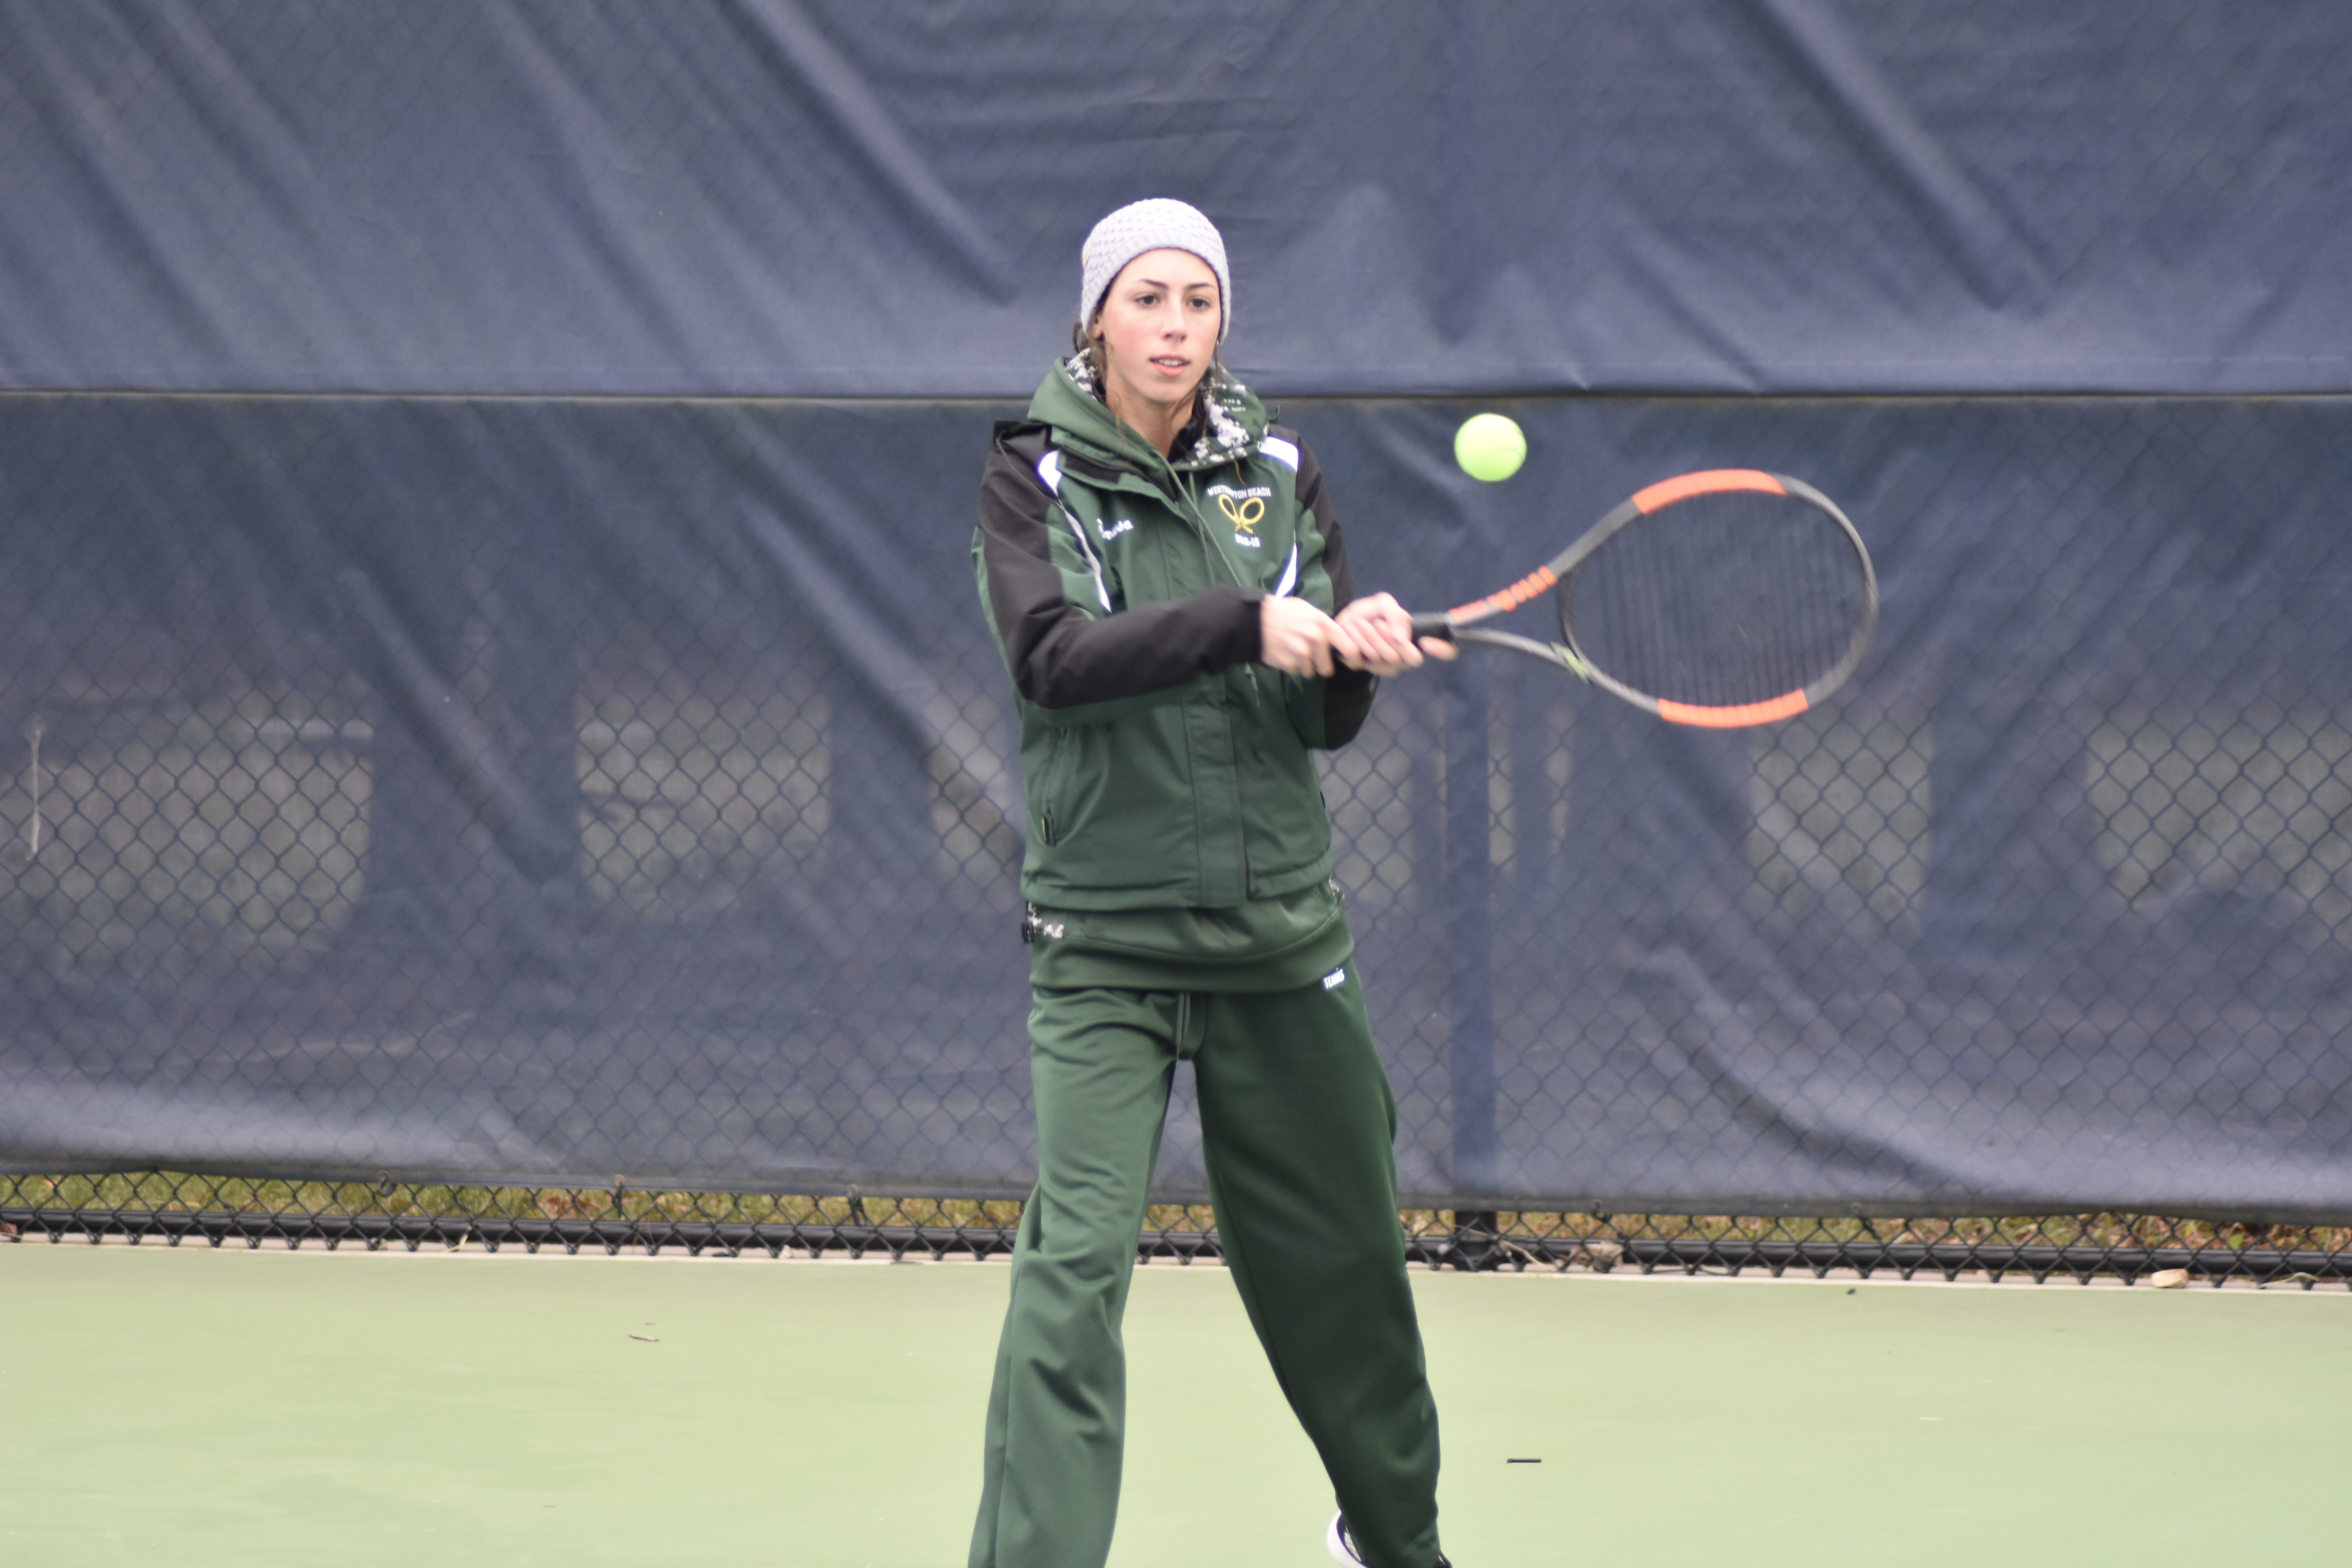 Rose Peruso, pictured, won the doubles title with teammate Jen Curran.